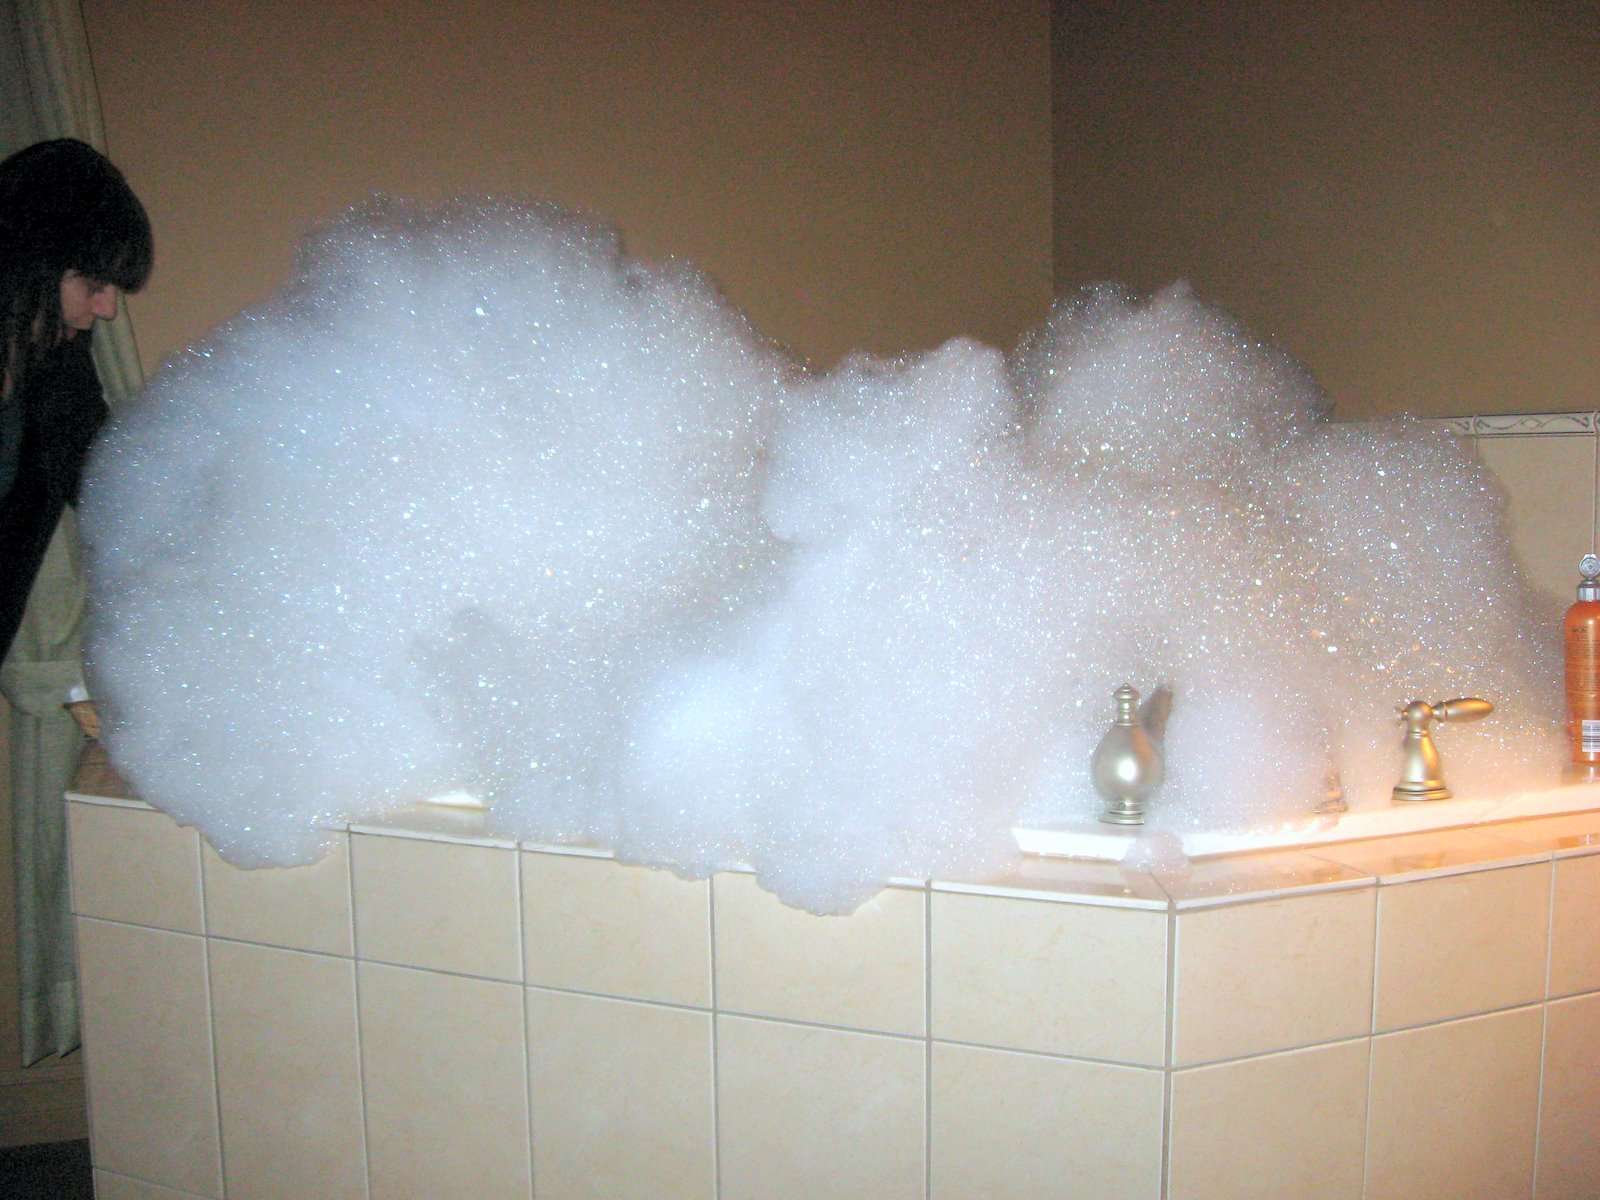 How to Make a Bubble Bath with Lots of Bubbles - Behind The Shower